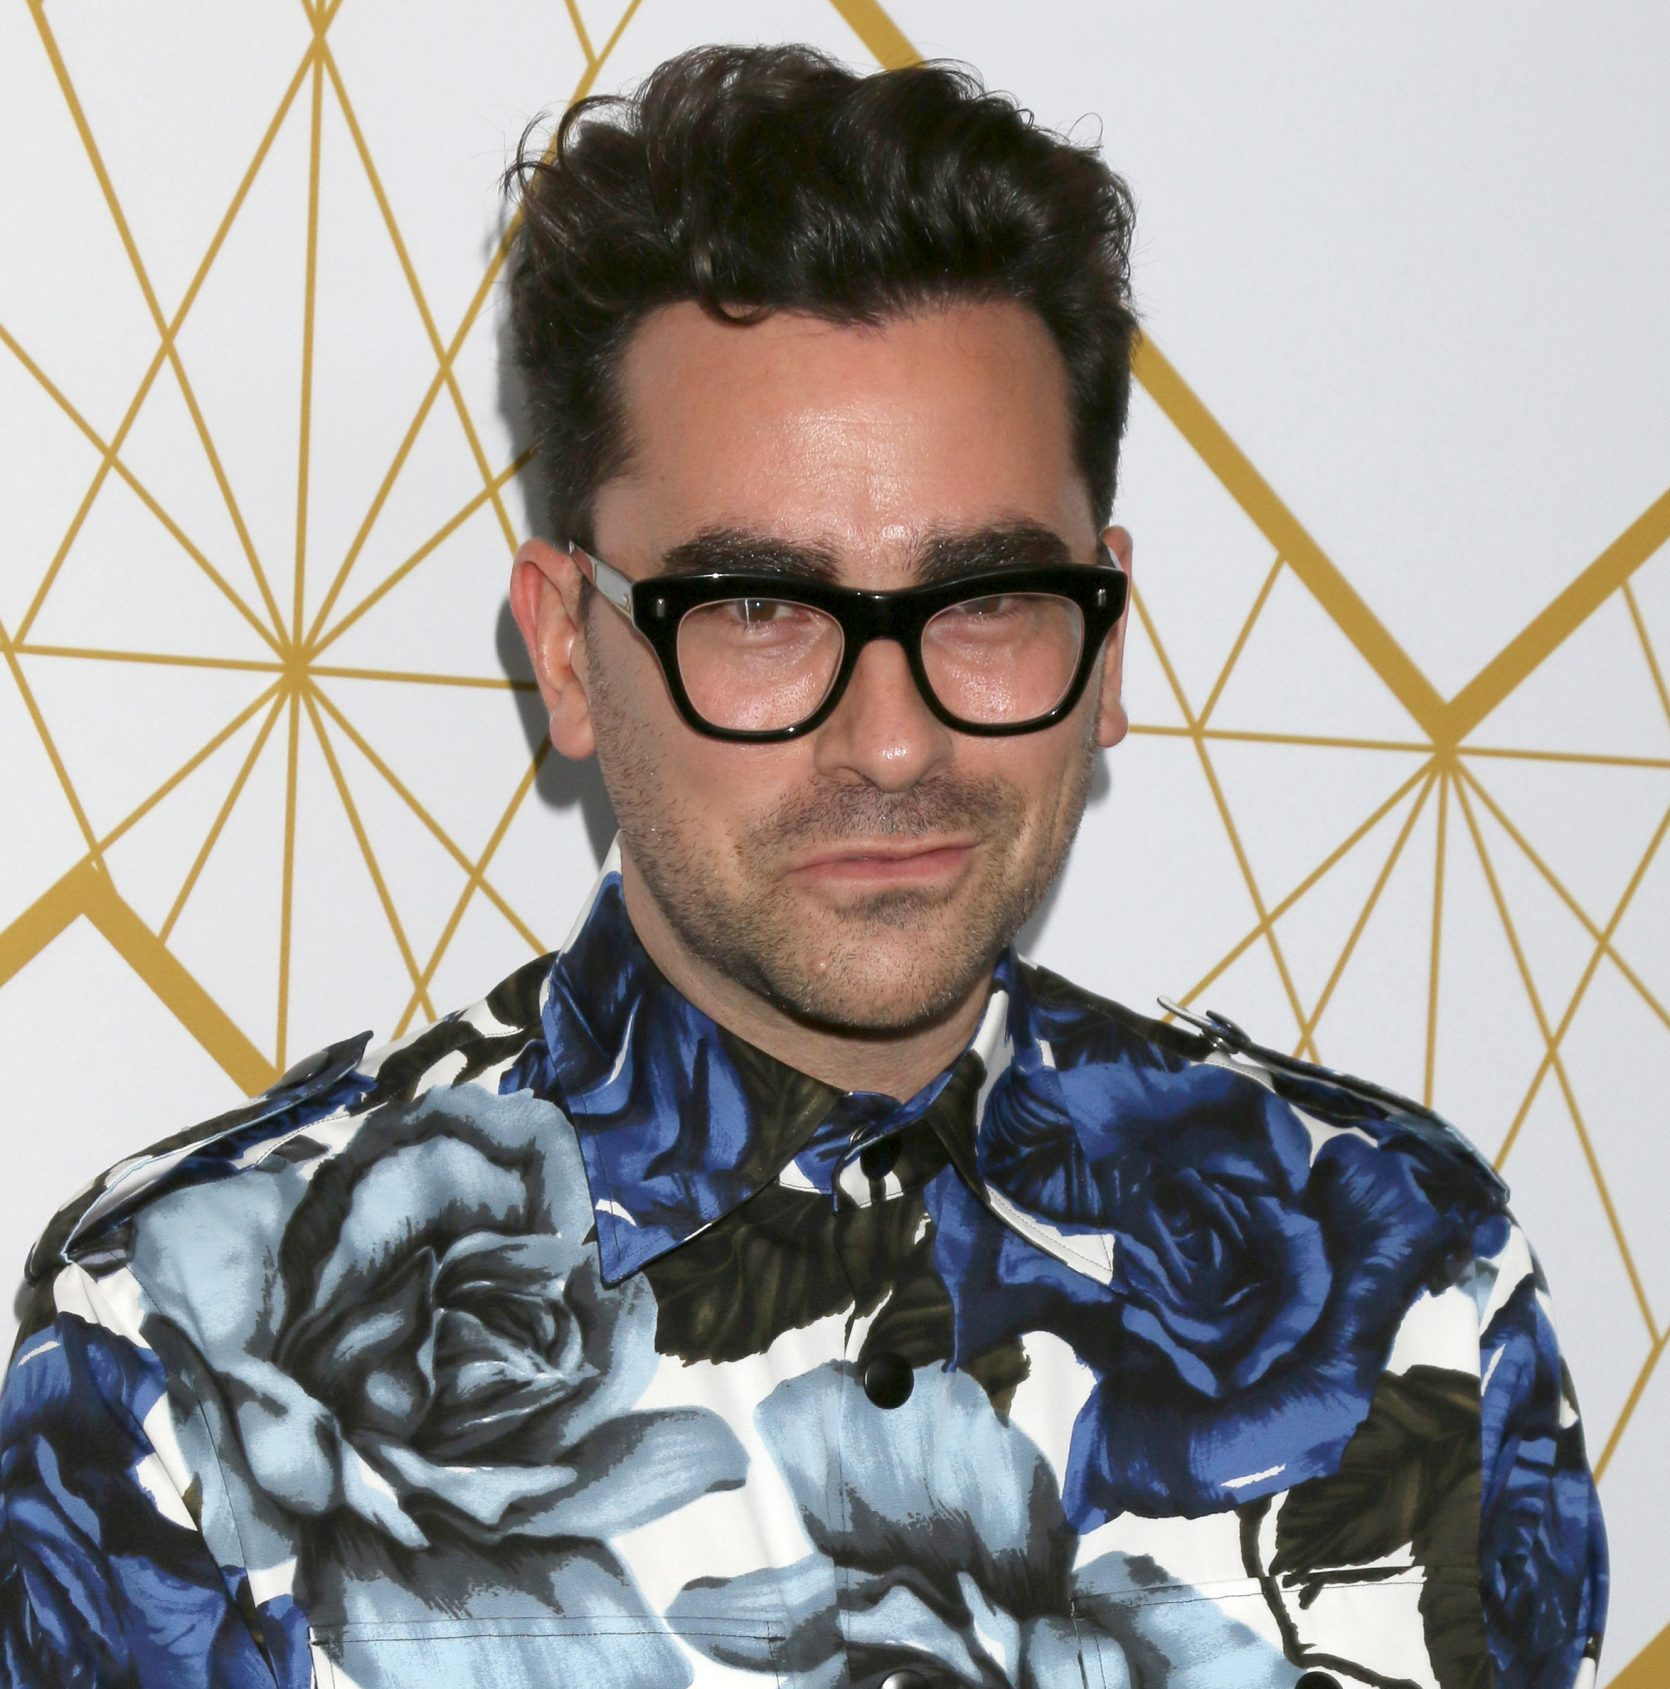 Dan Levy smiles at a red carpet event. He wears his signature thick framed black glasses and a floral blue and white shirt.